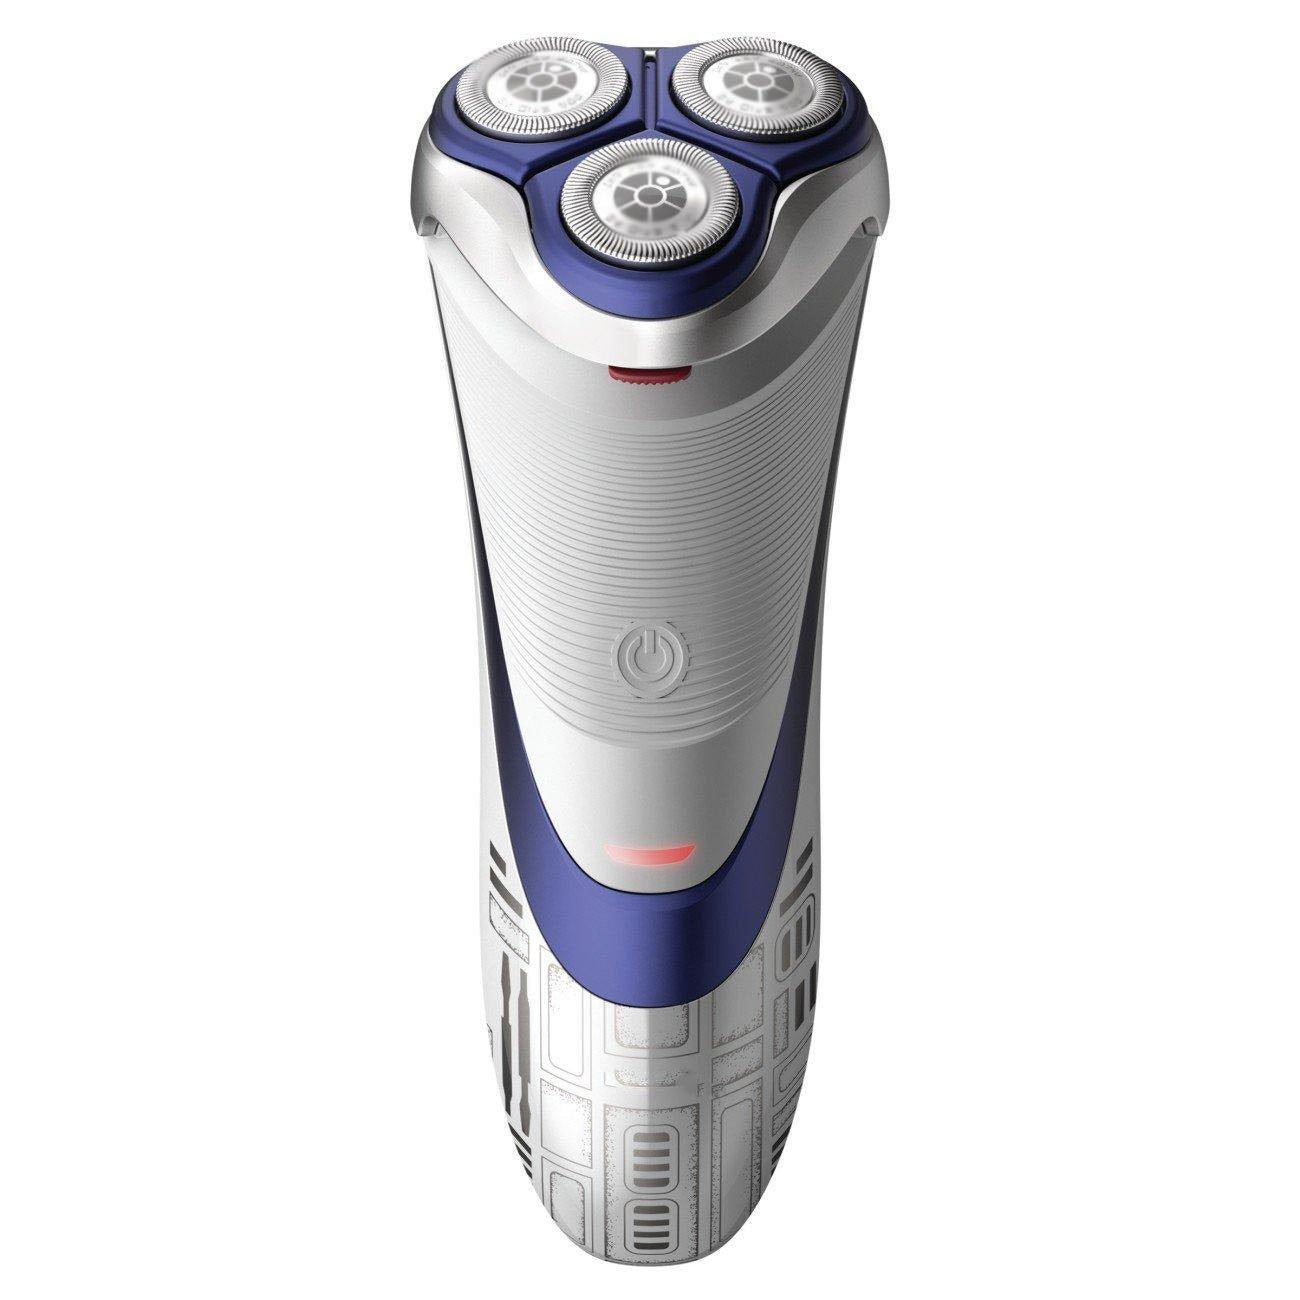 Dry Electric Shaver With Pop-up Trimmer